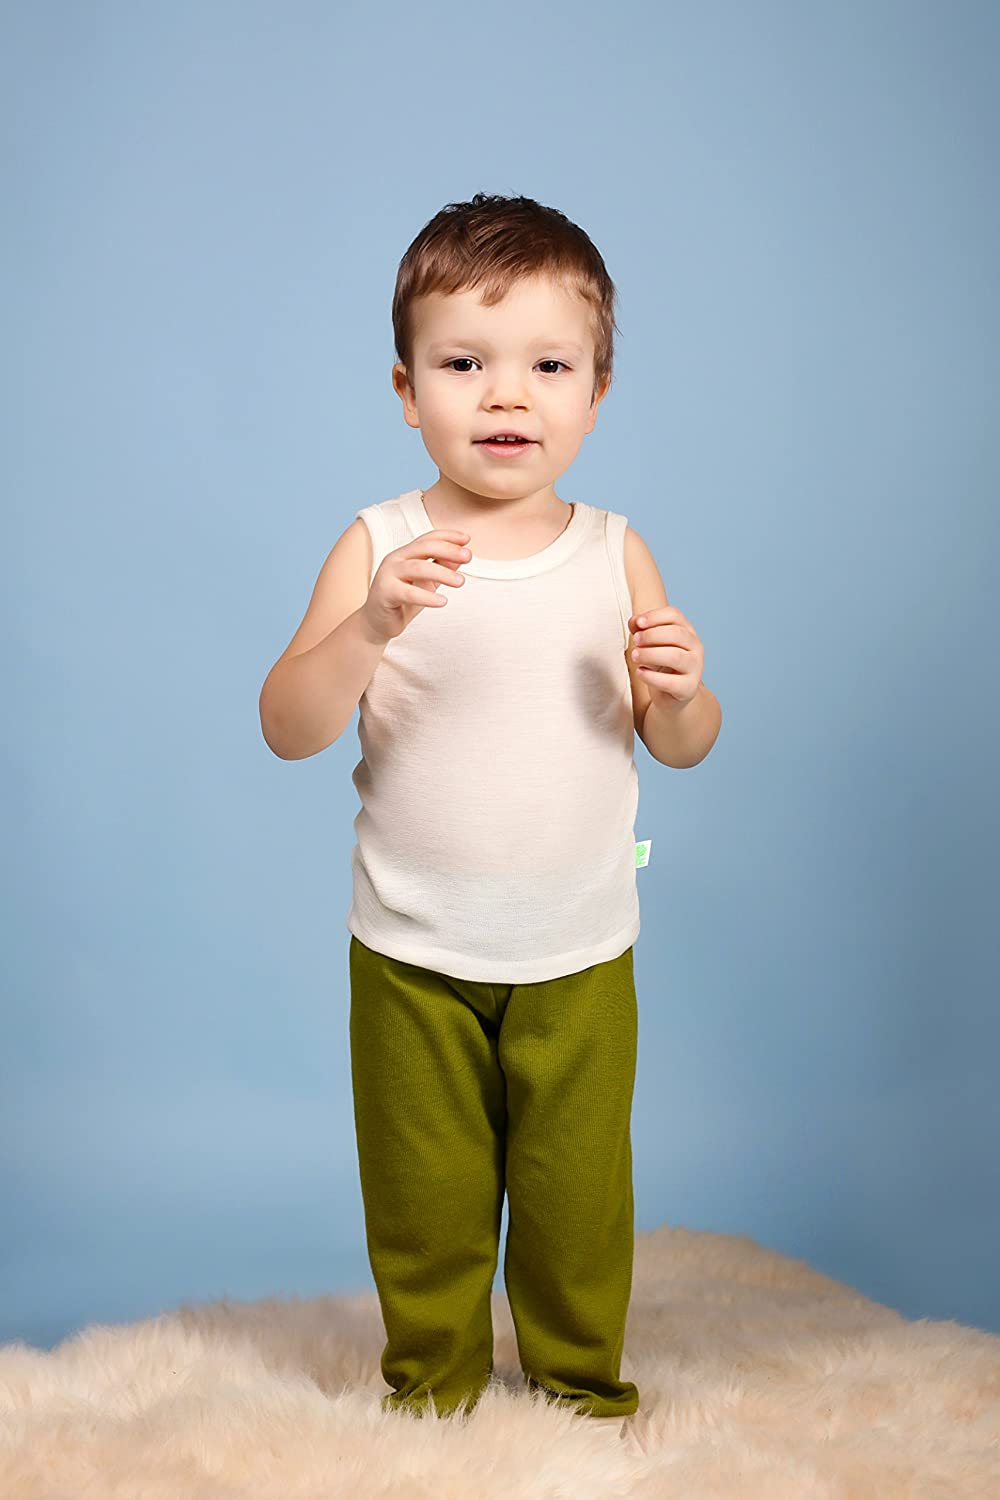 GREEN ROSE Kids Sleeveless T-Shirts Undershirts Baby Girl Boy Tee Shirts 100/% Merino Wool 3mo-12yr.